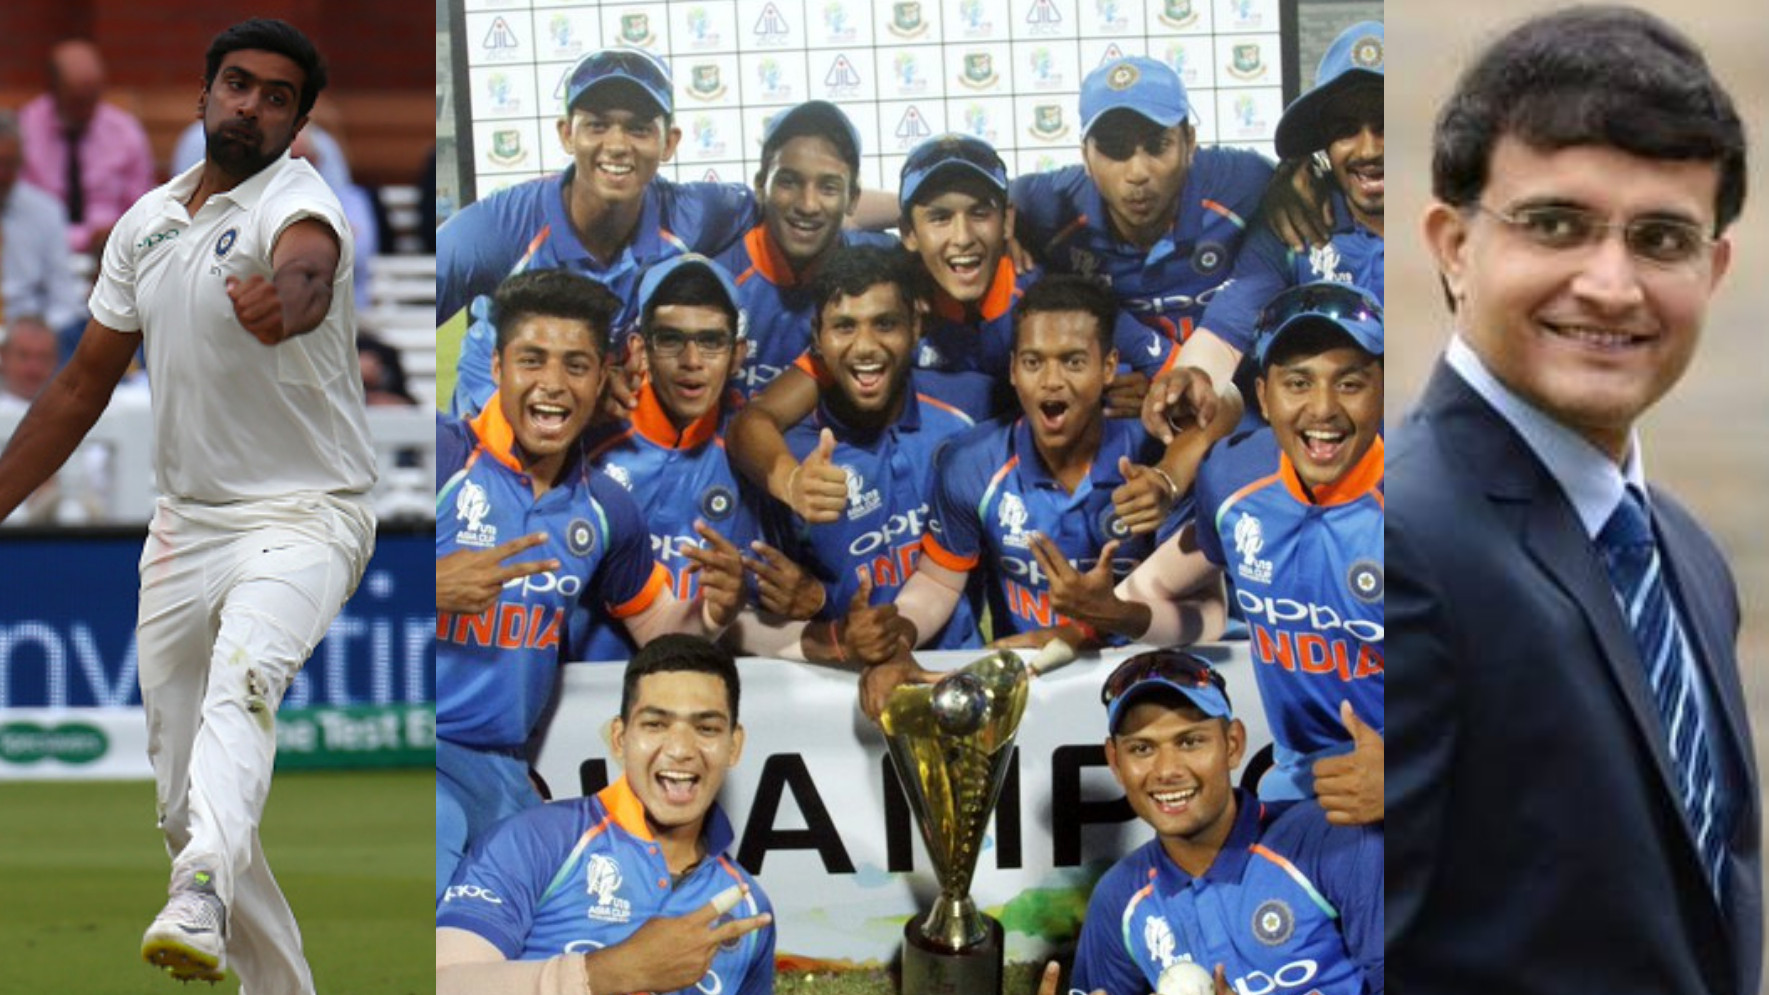 India U19 gets lauded by Indian cricket fraternity for their Youth Asia Cup 2018 triumph